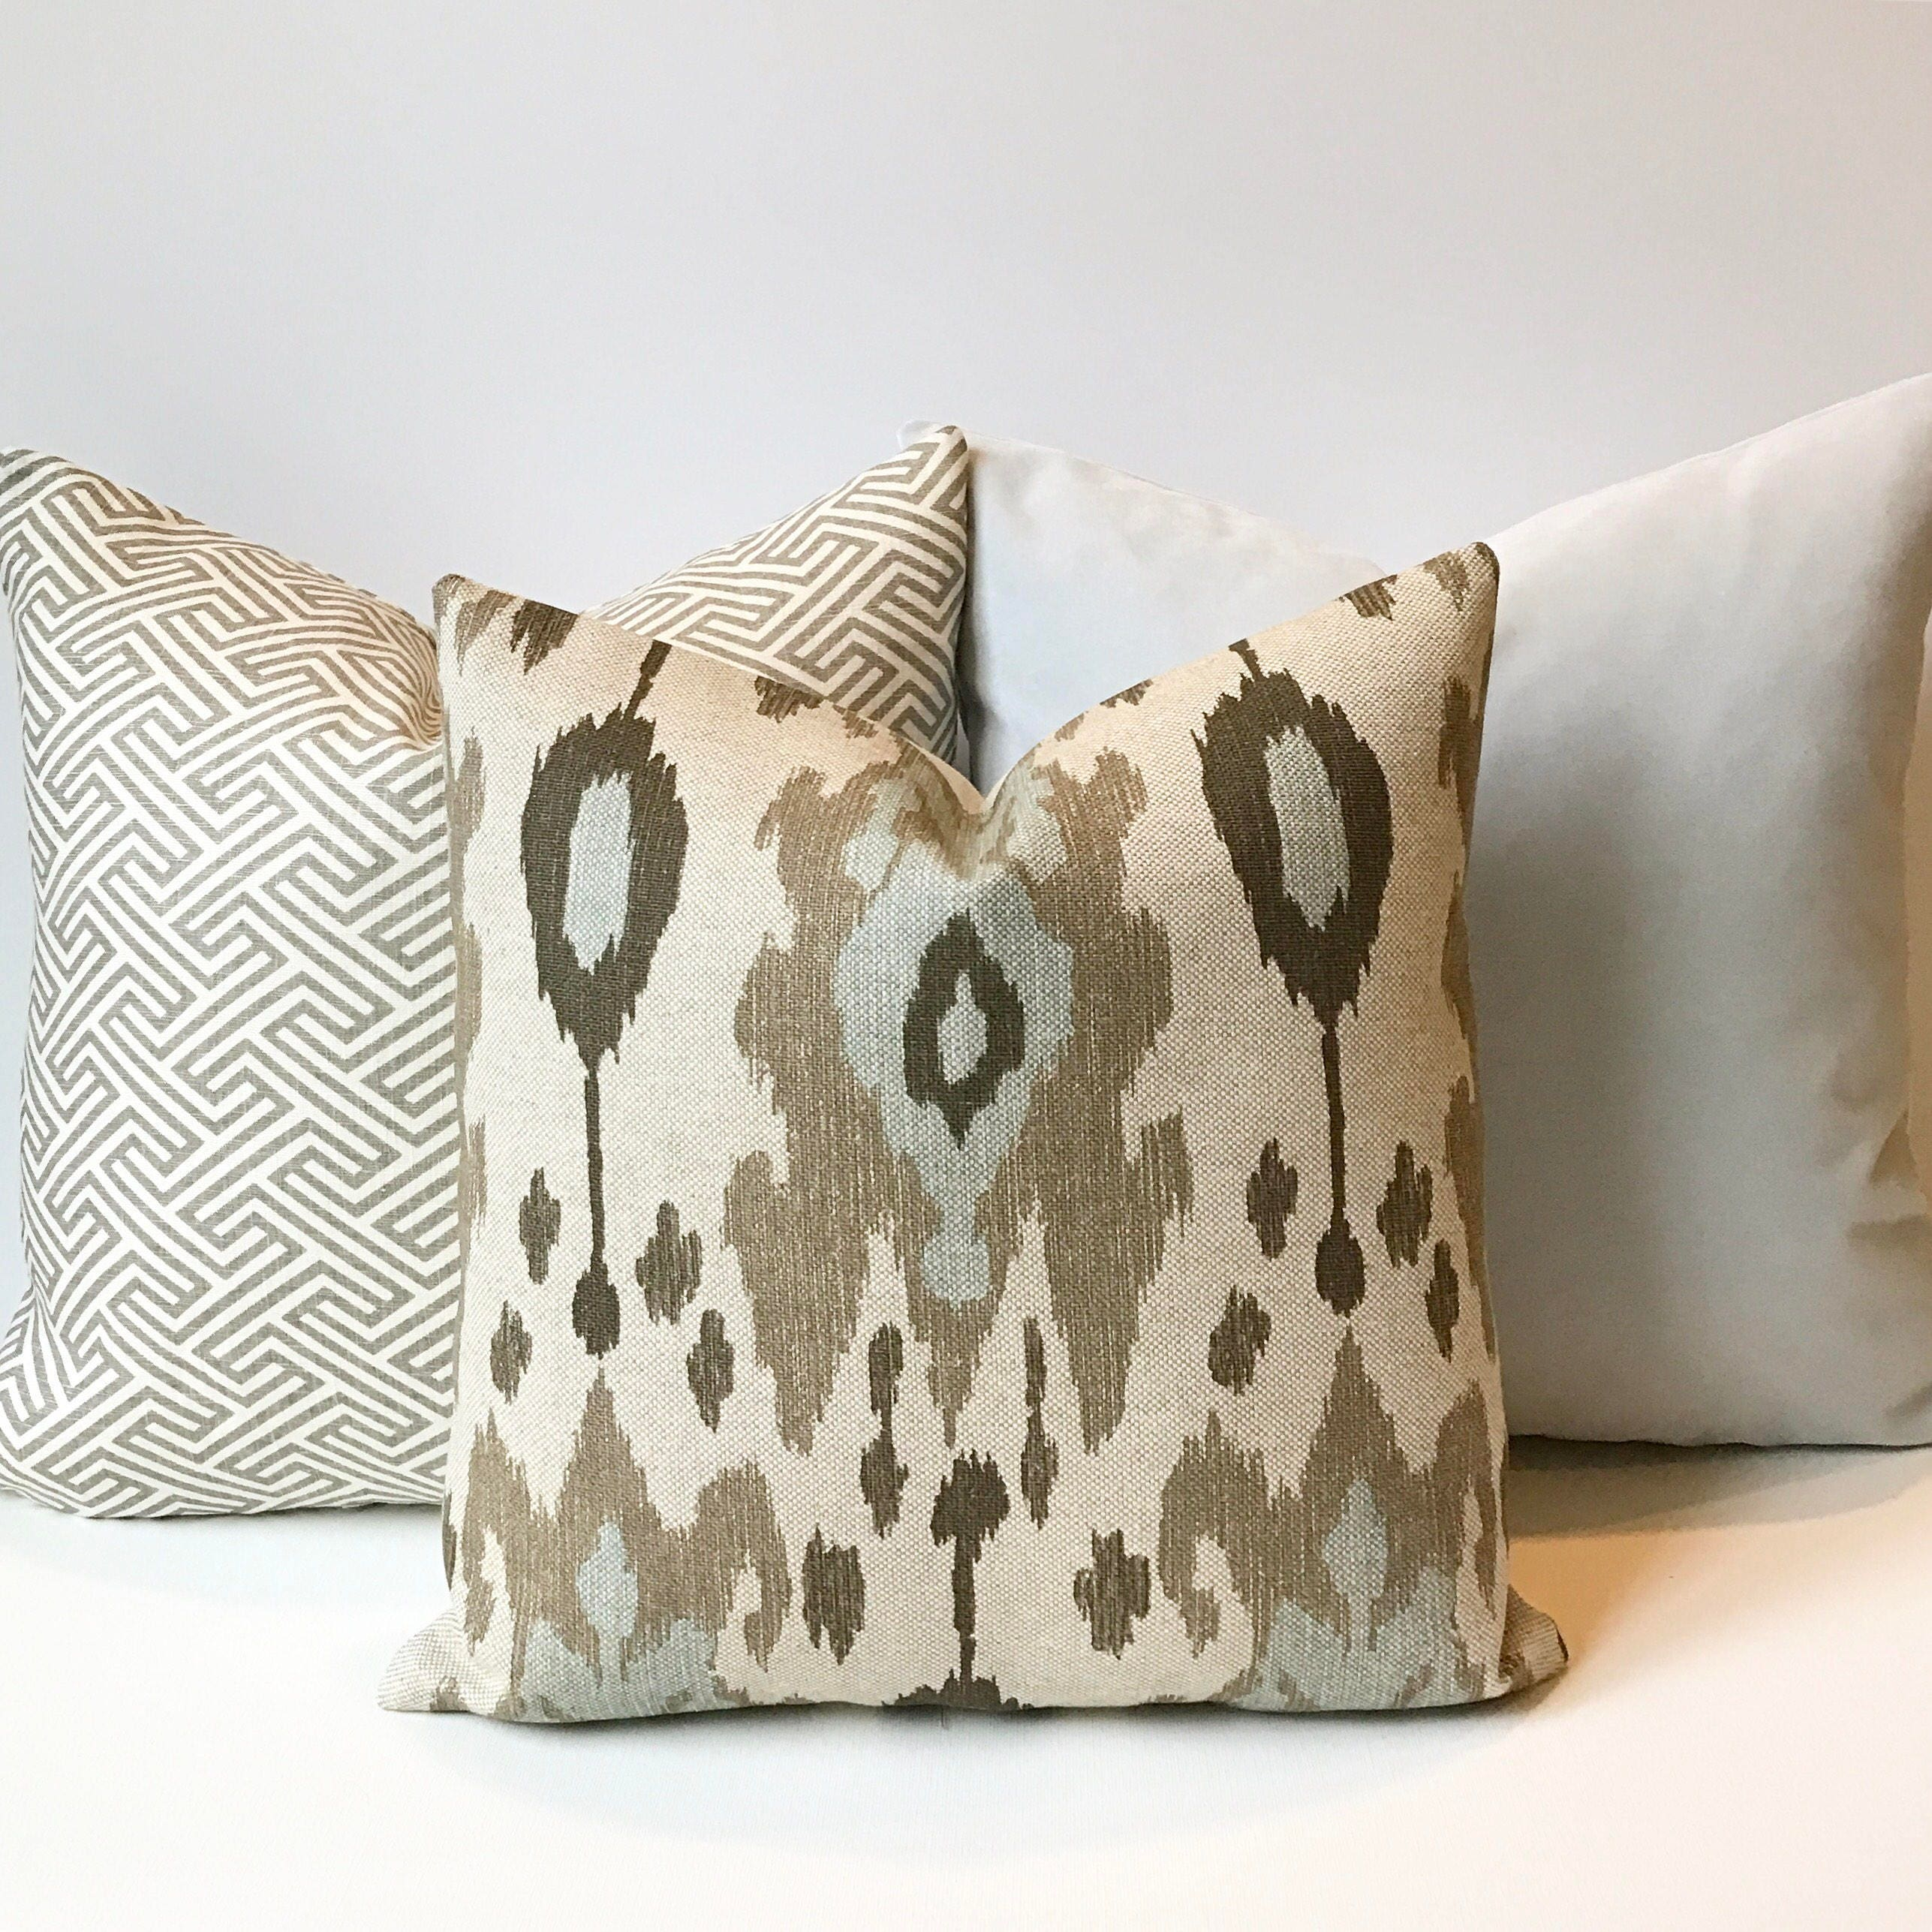 Ikat decorative pillow cover light blue brown and grey  f1ef80d96